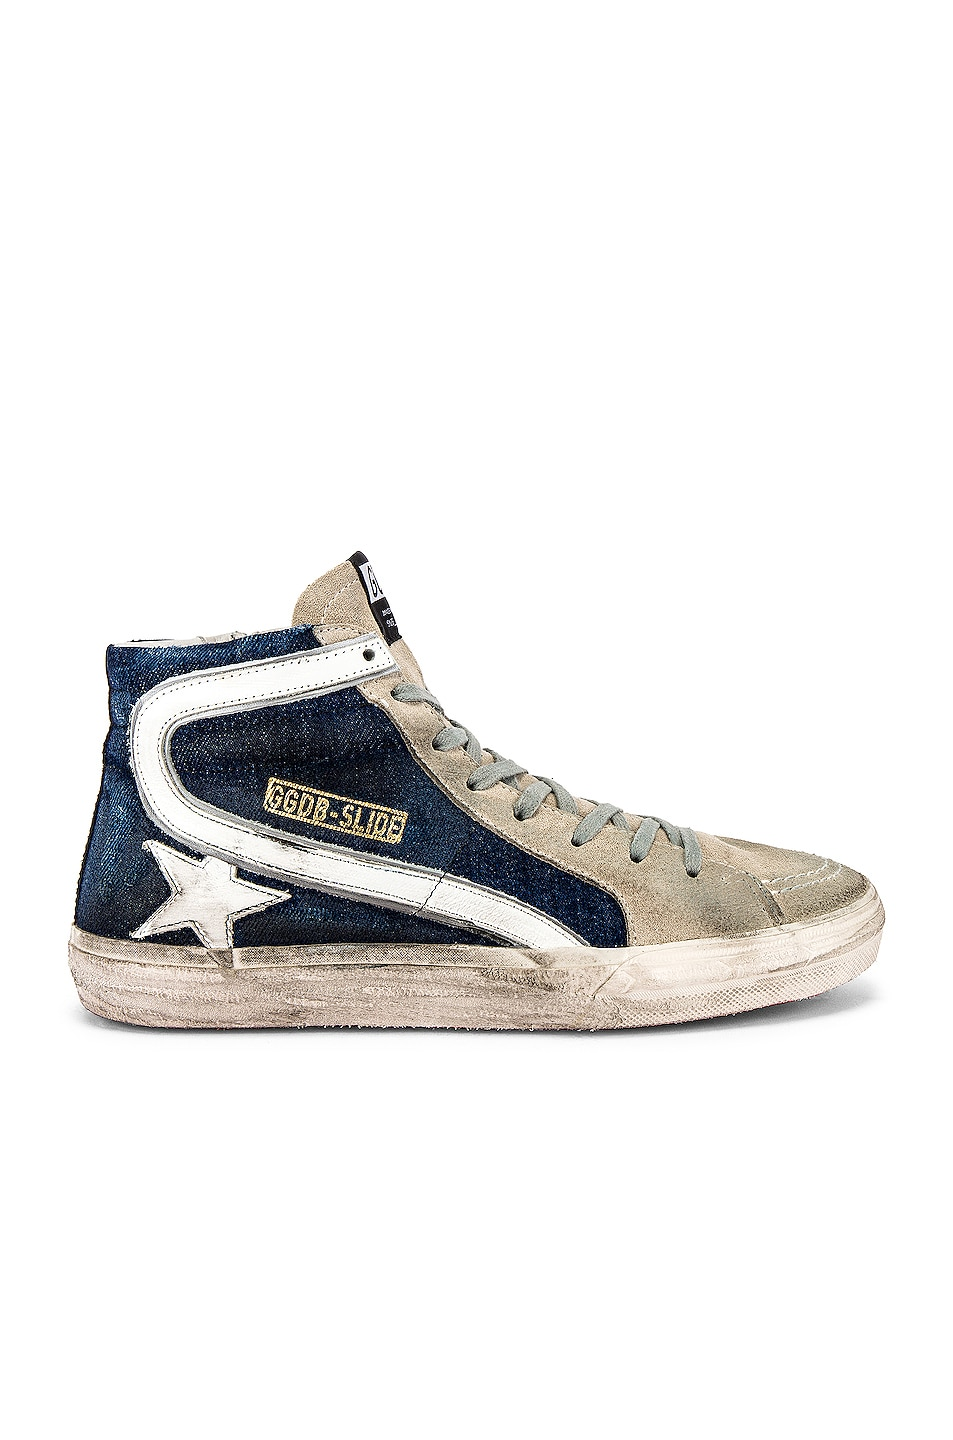 Image 2 of Golden Goose Slide Sneaker in Blue Denim & White Star